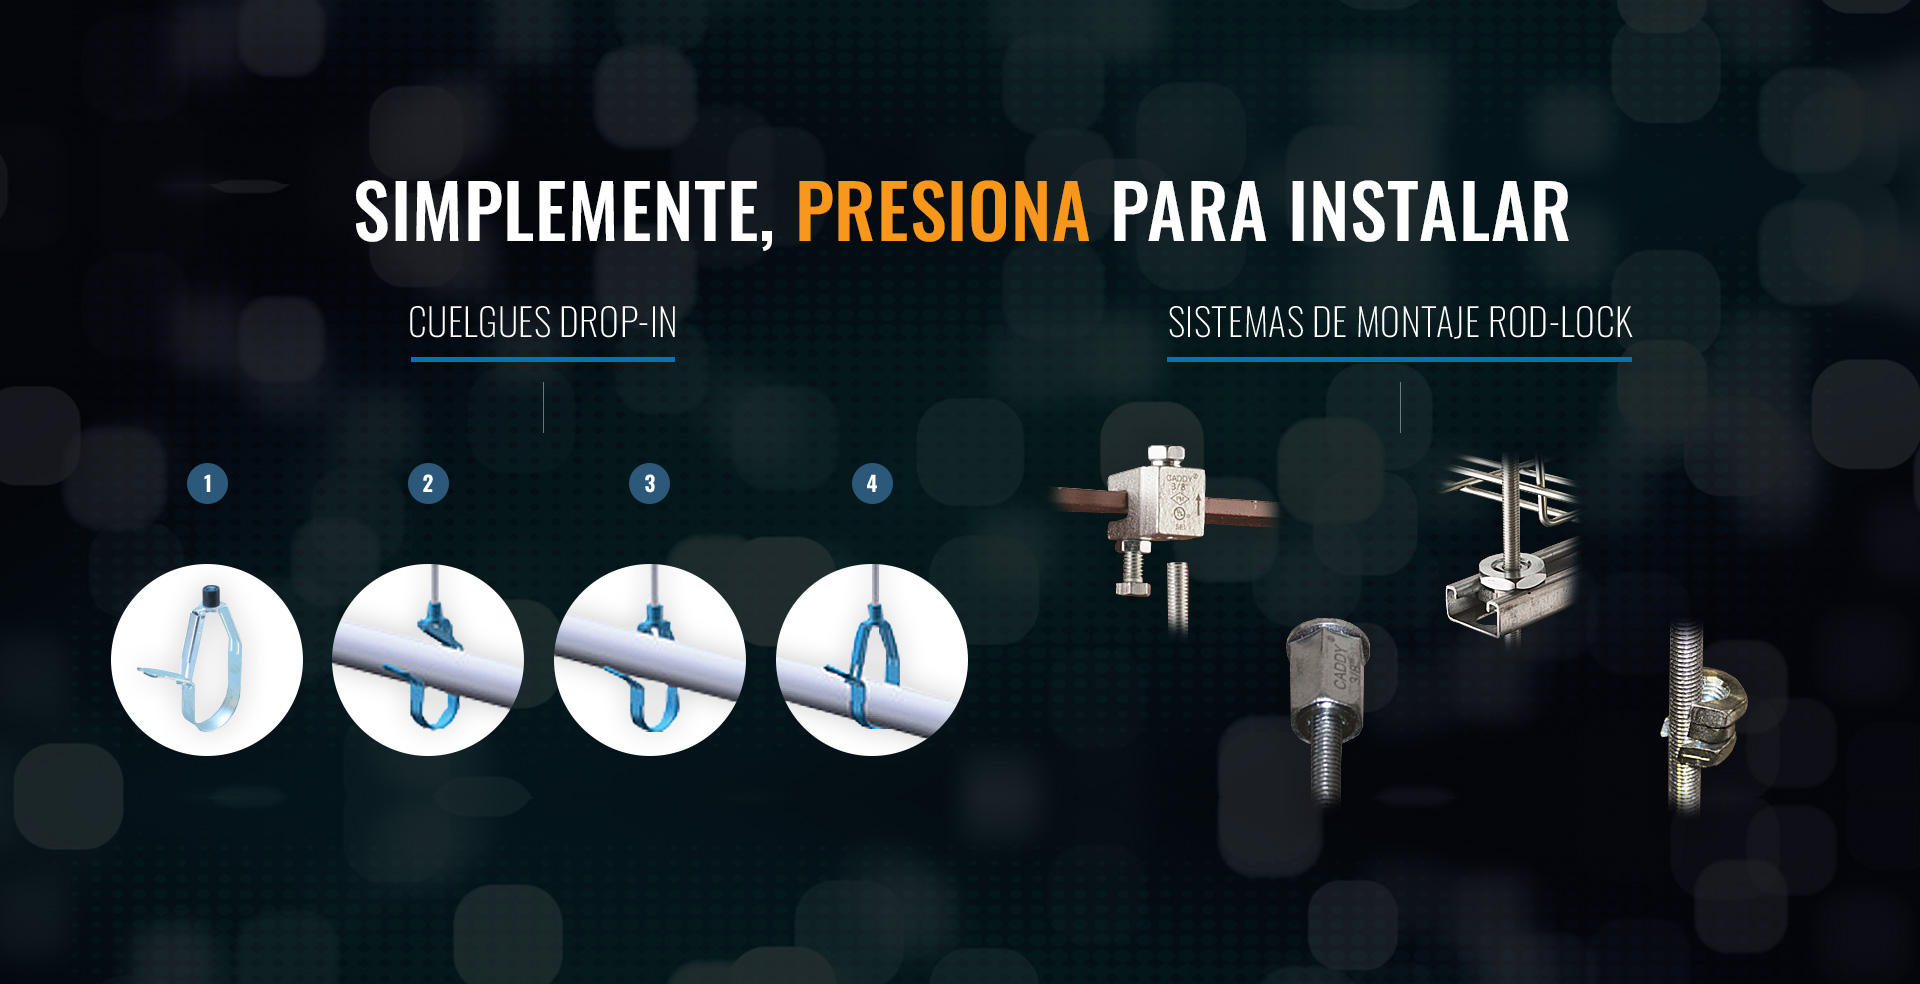 Cuelgues Drop In, Sistema de montaje ROD LOCK